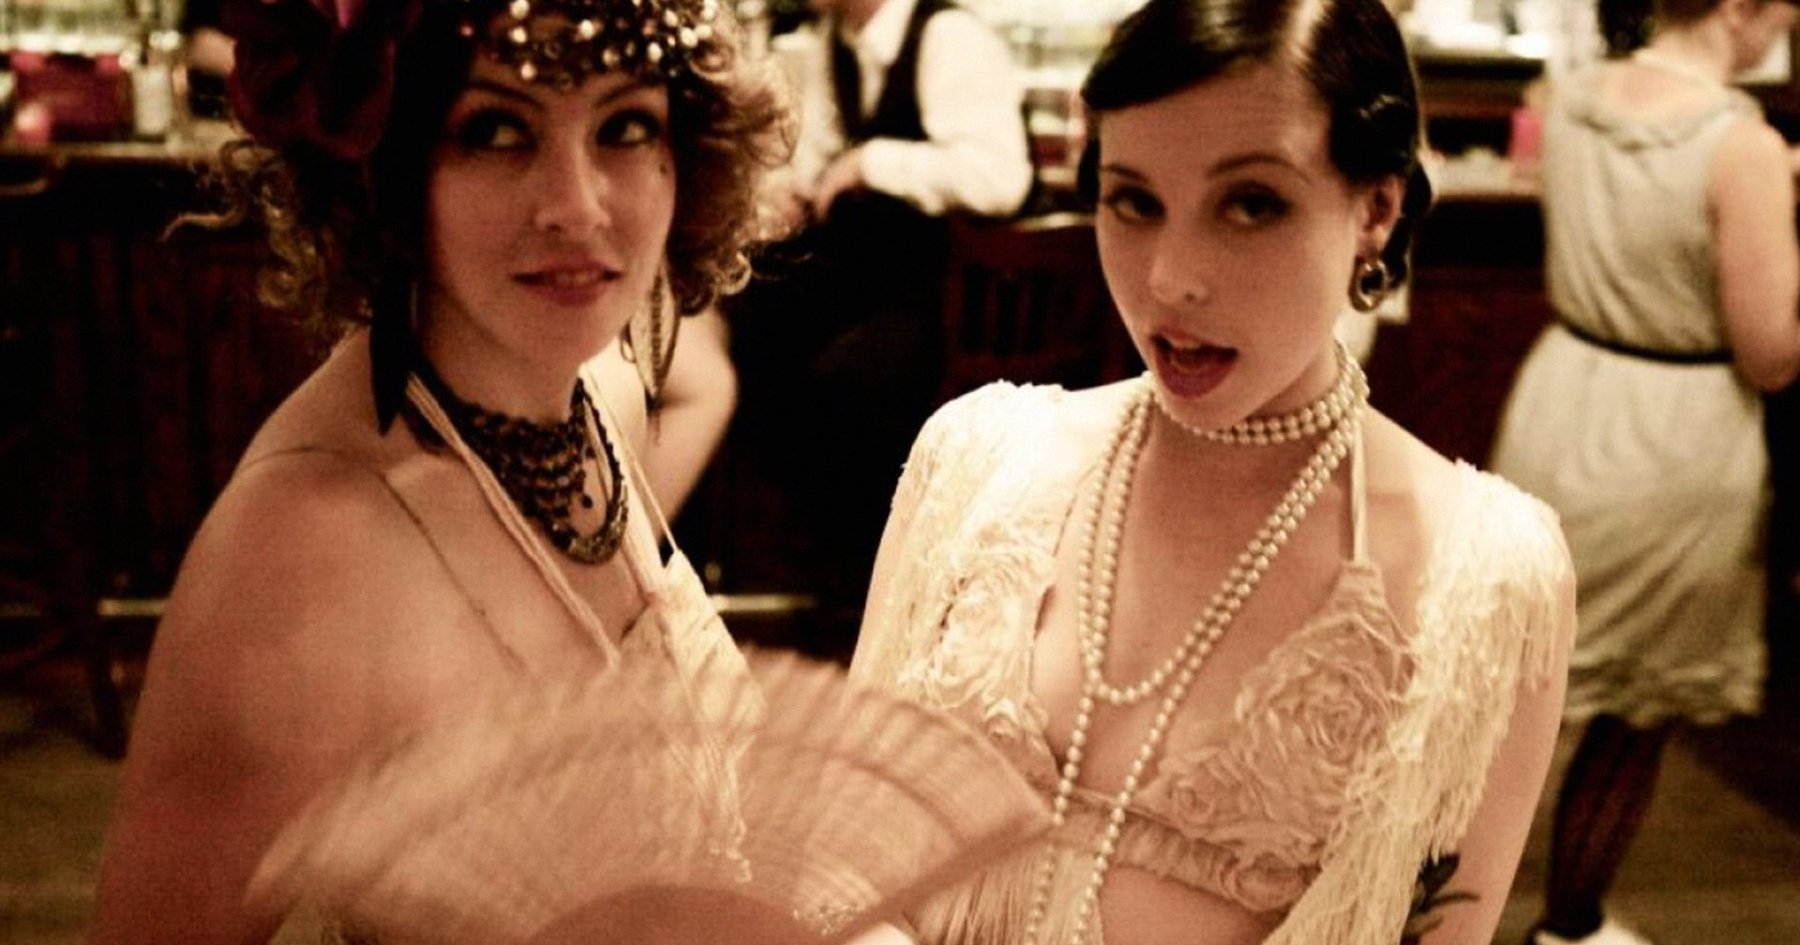 Chicks Dig Moonshine, Burlesque and Japanese Jazz. Trust.